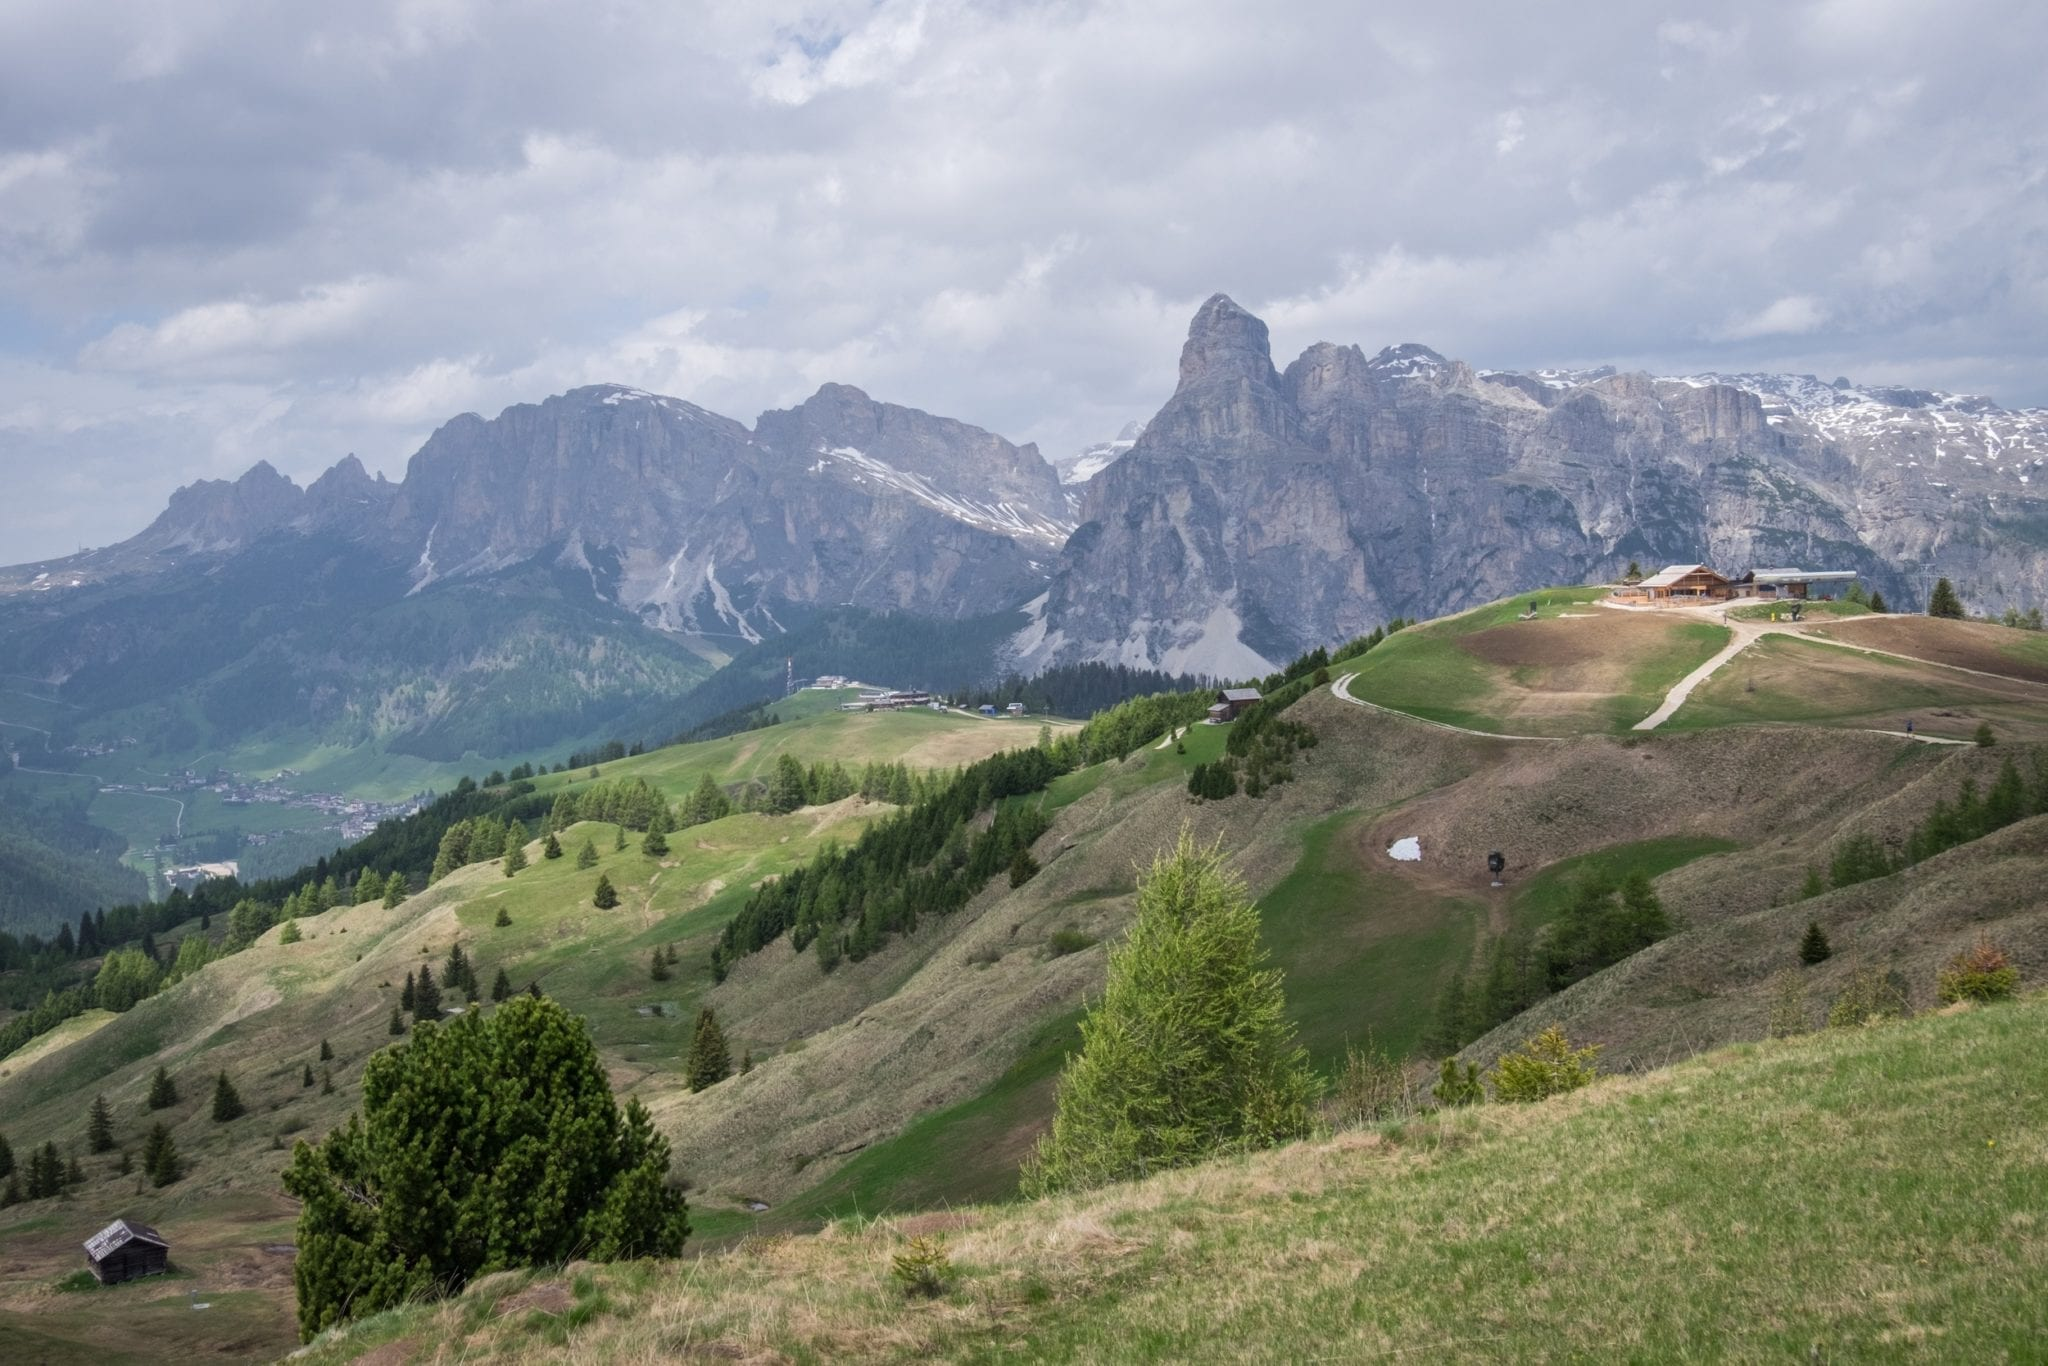 View of the Dolomites: jagged gray peaks in the background and mossy green hills in the foreground. A gray cloudy sky overhead.